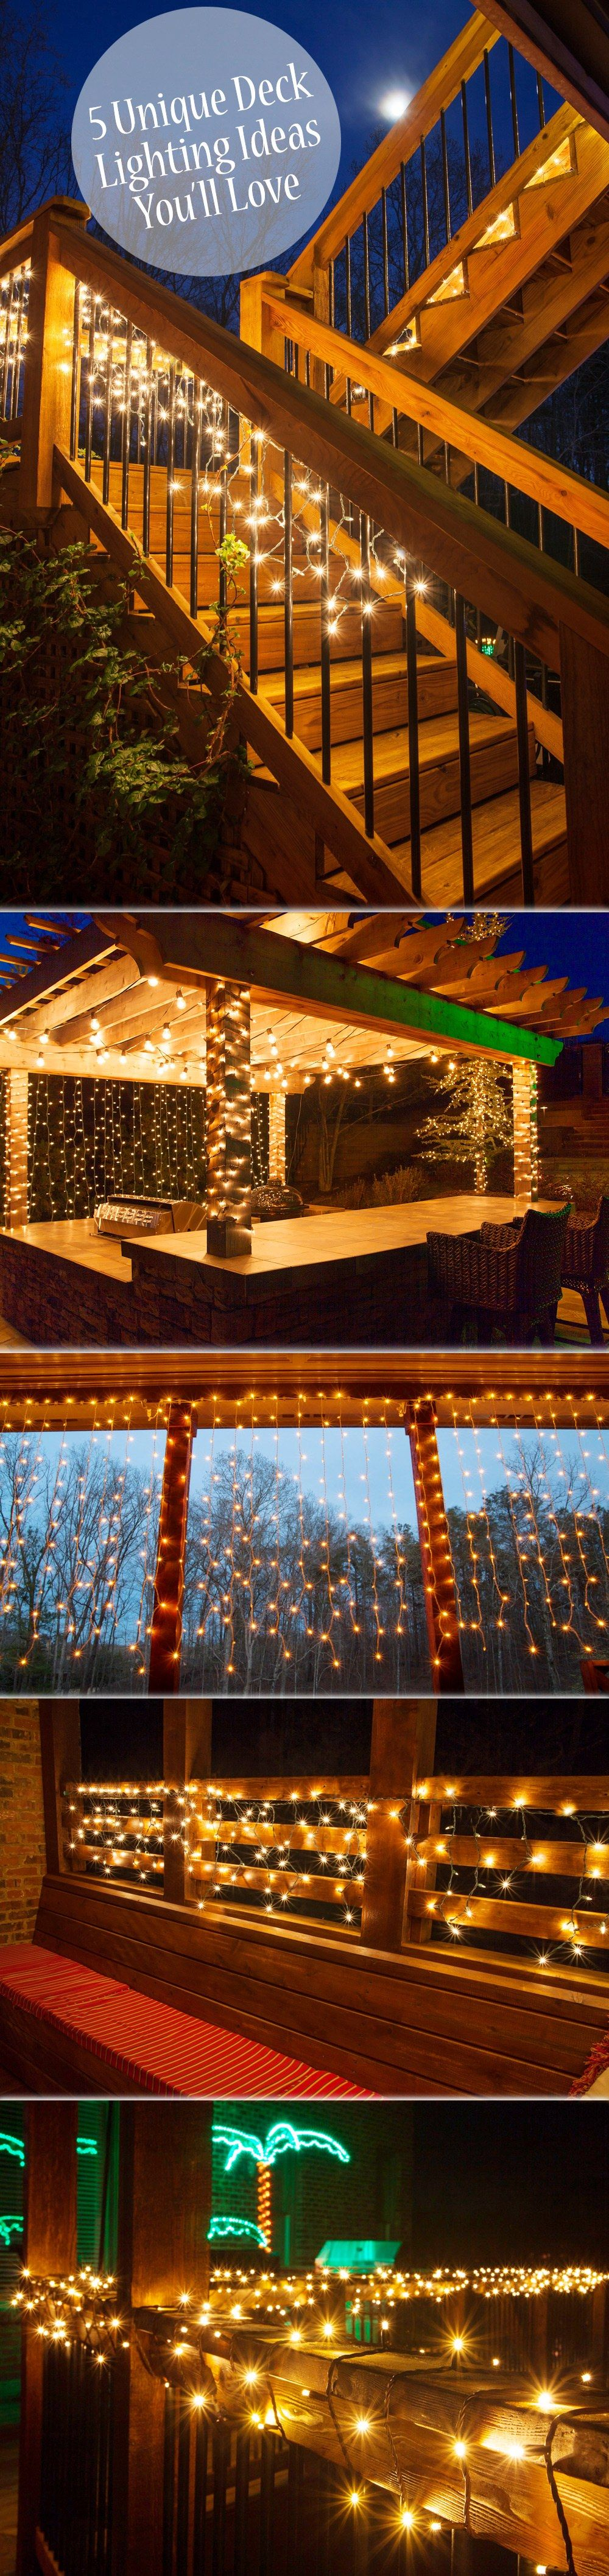 patio deck lighting ideas. what an easy and inexpensive way to add magic your deck or patio outside fun pinterest decking patios u2026 lighting ideas g